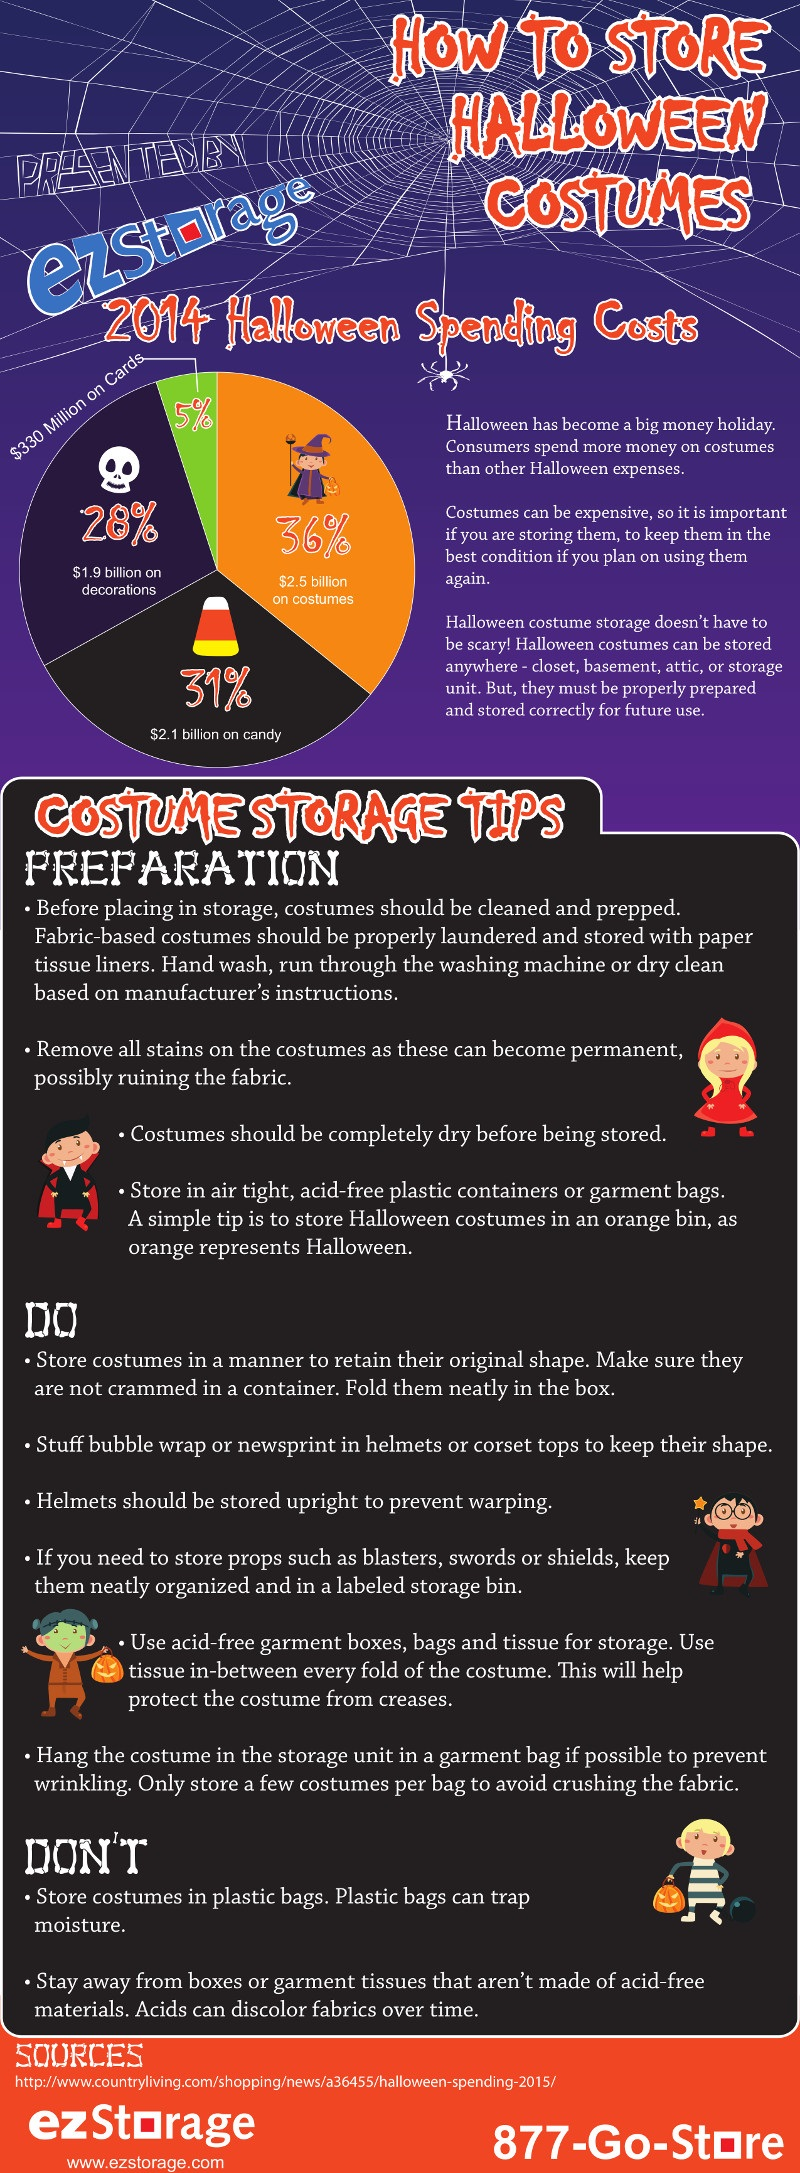 how-can-you-increase-the-longevity-of-halloween-costumes